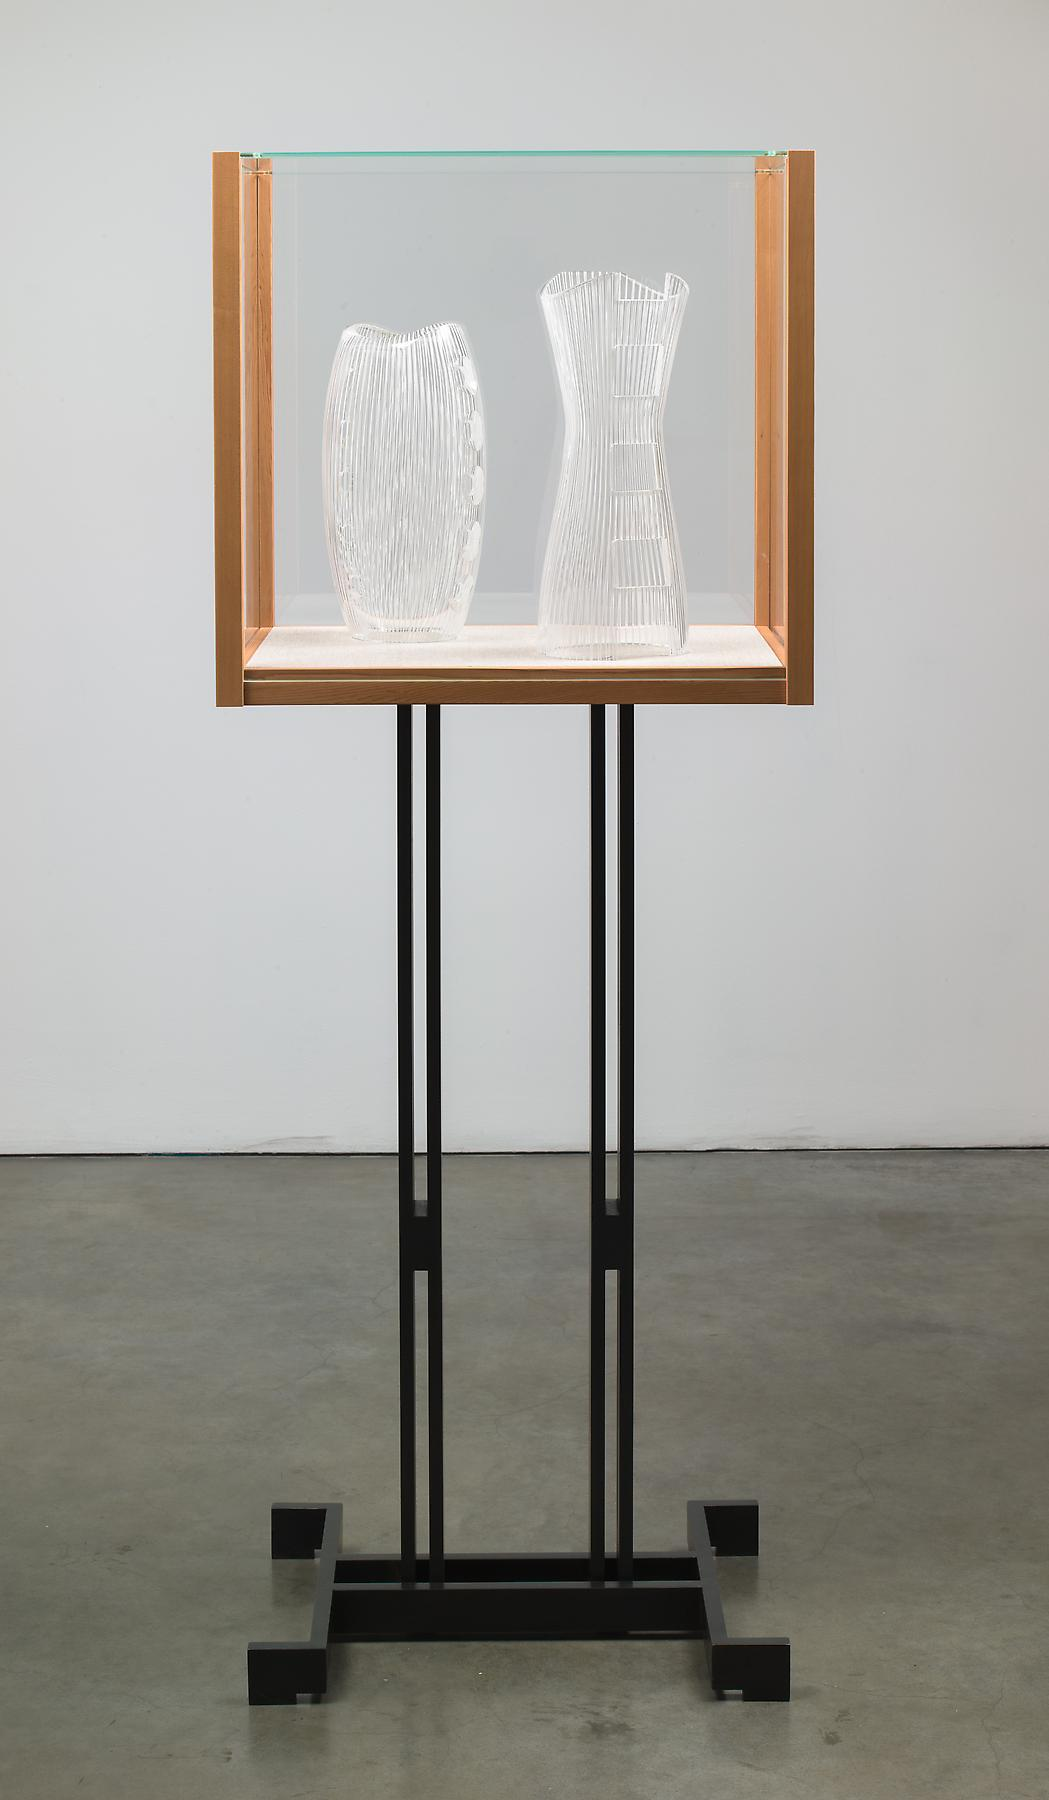 Josiah McElheny <i>Models for an abstract body (after Courrèges)</i> 2012 Patinated cold-roll steel, cedar wood, low iron glass, hand blown and carved glass 65 3/8 x  24 1/2 x 17 1/2 inches